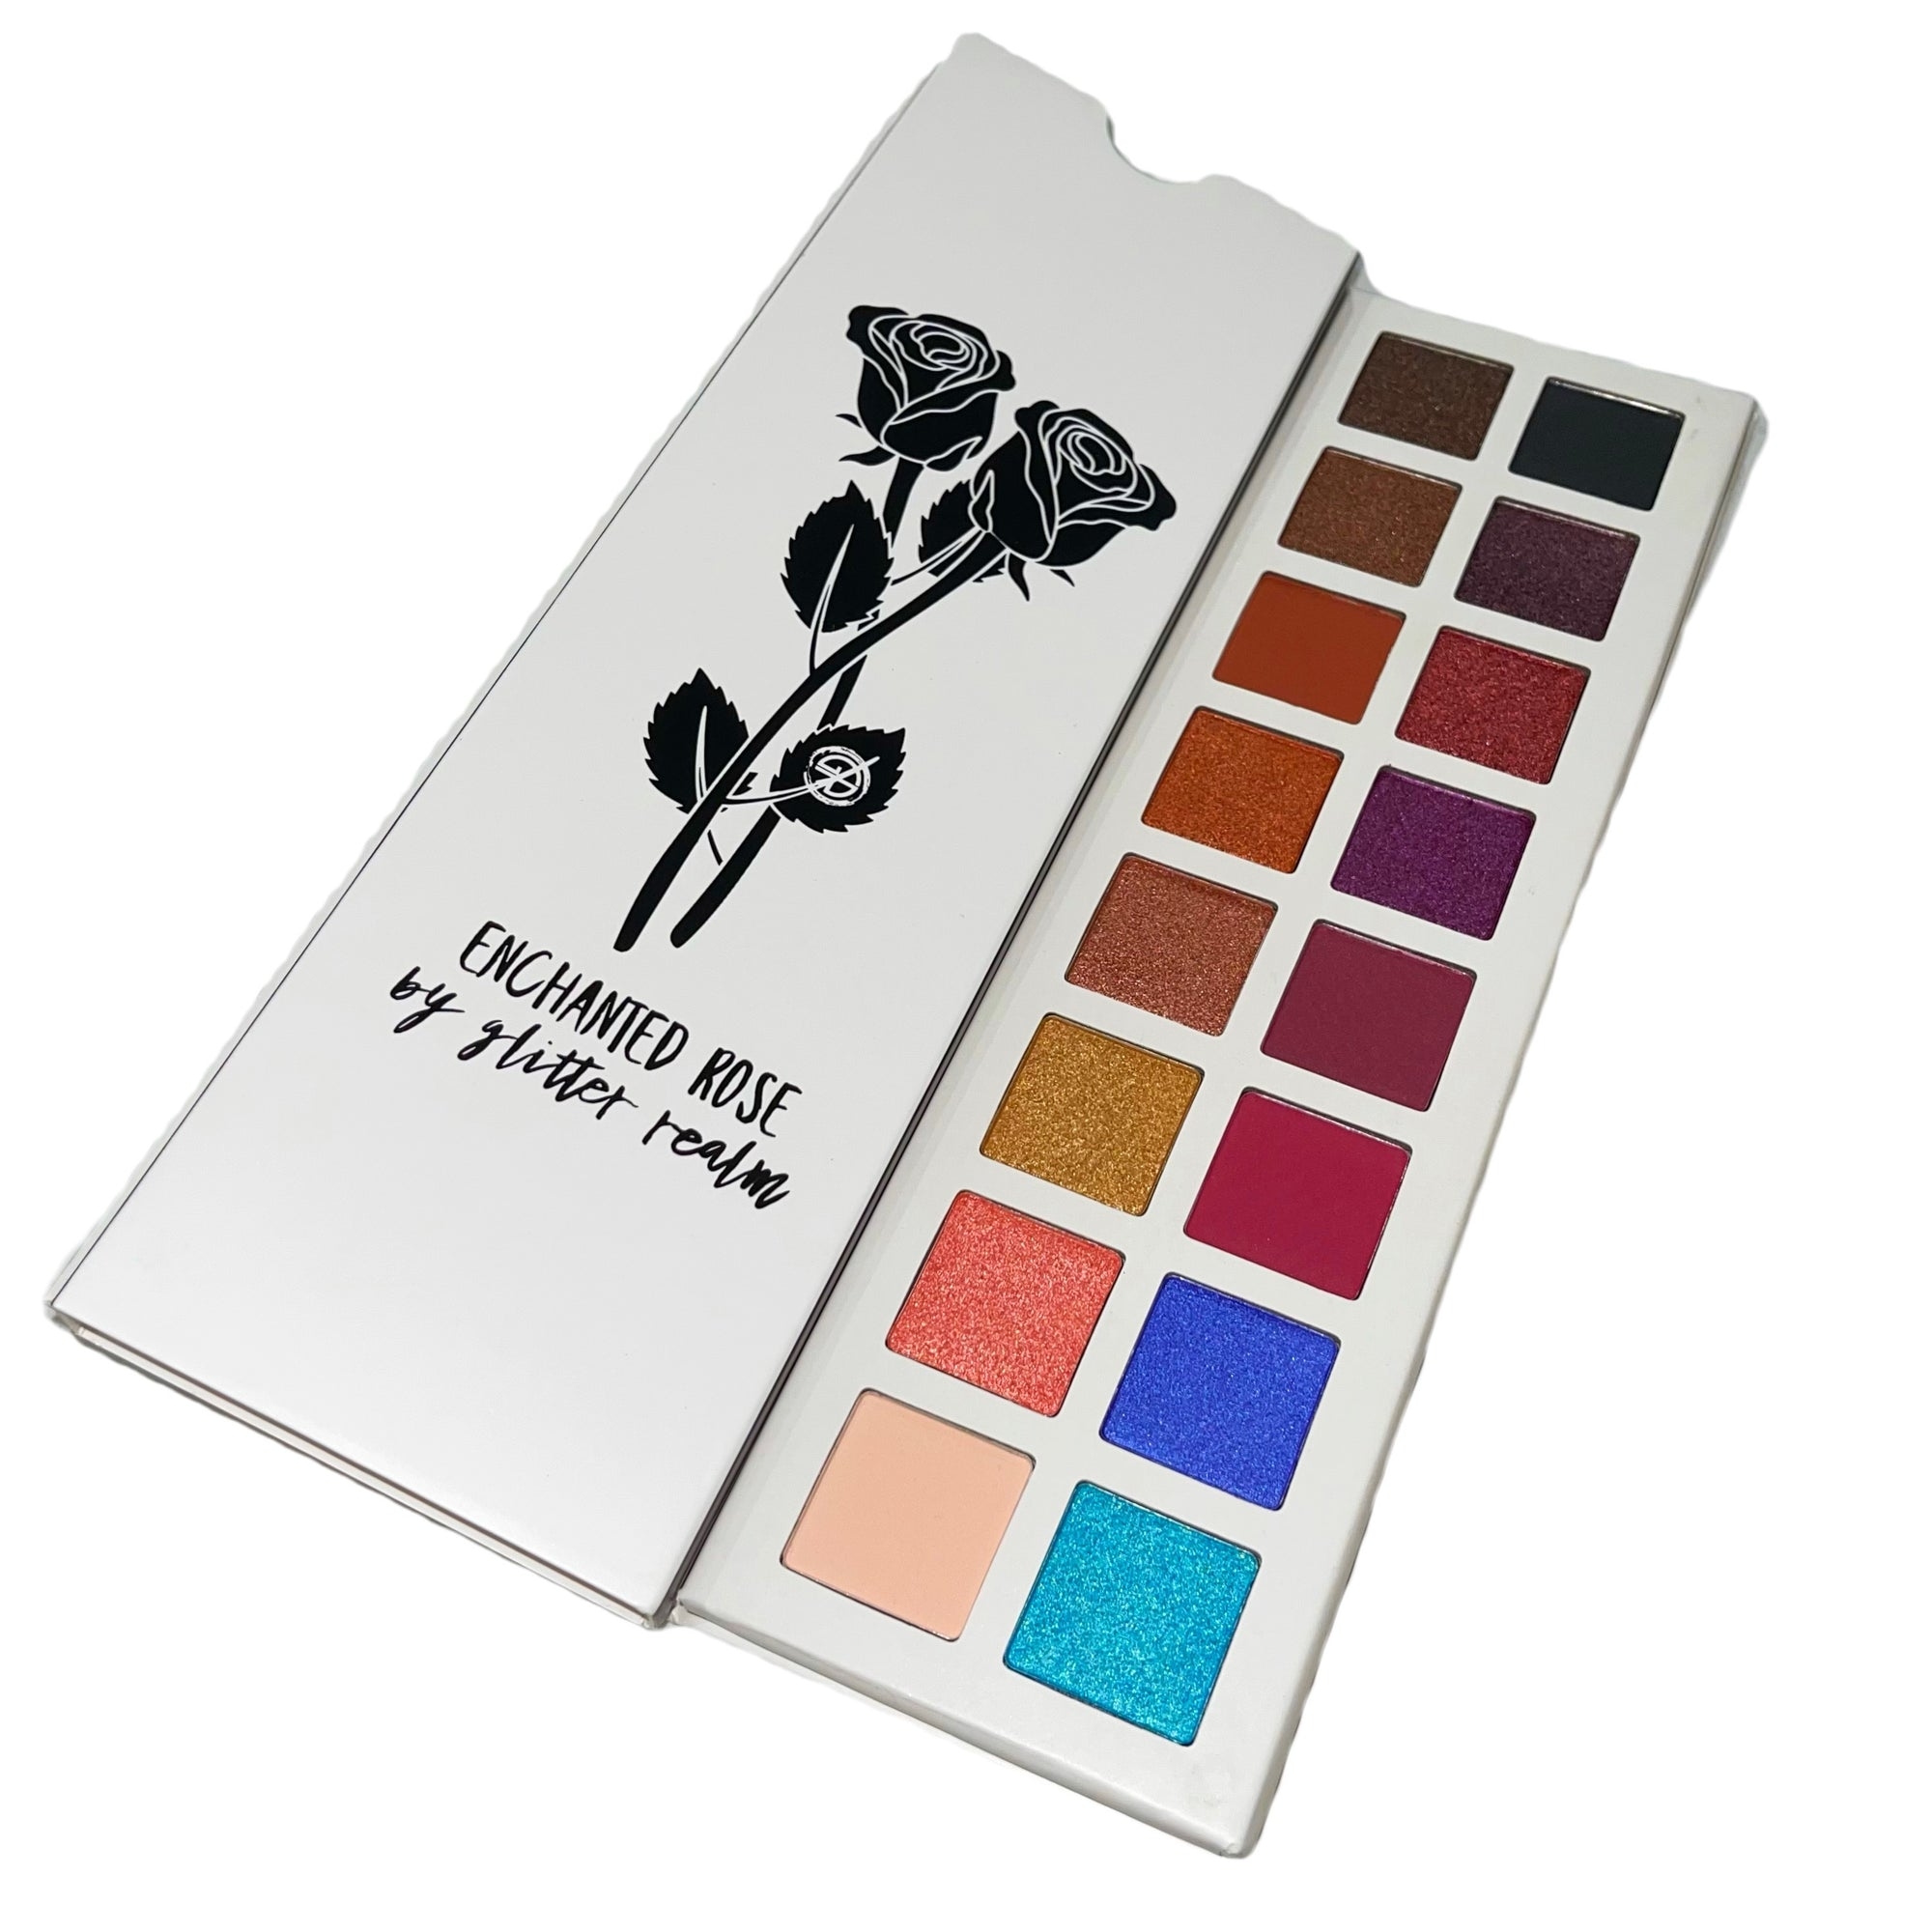 Enchanted Rose Palette